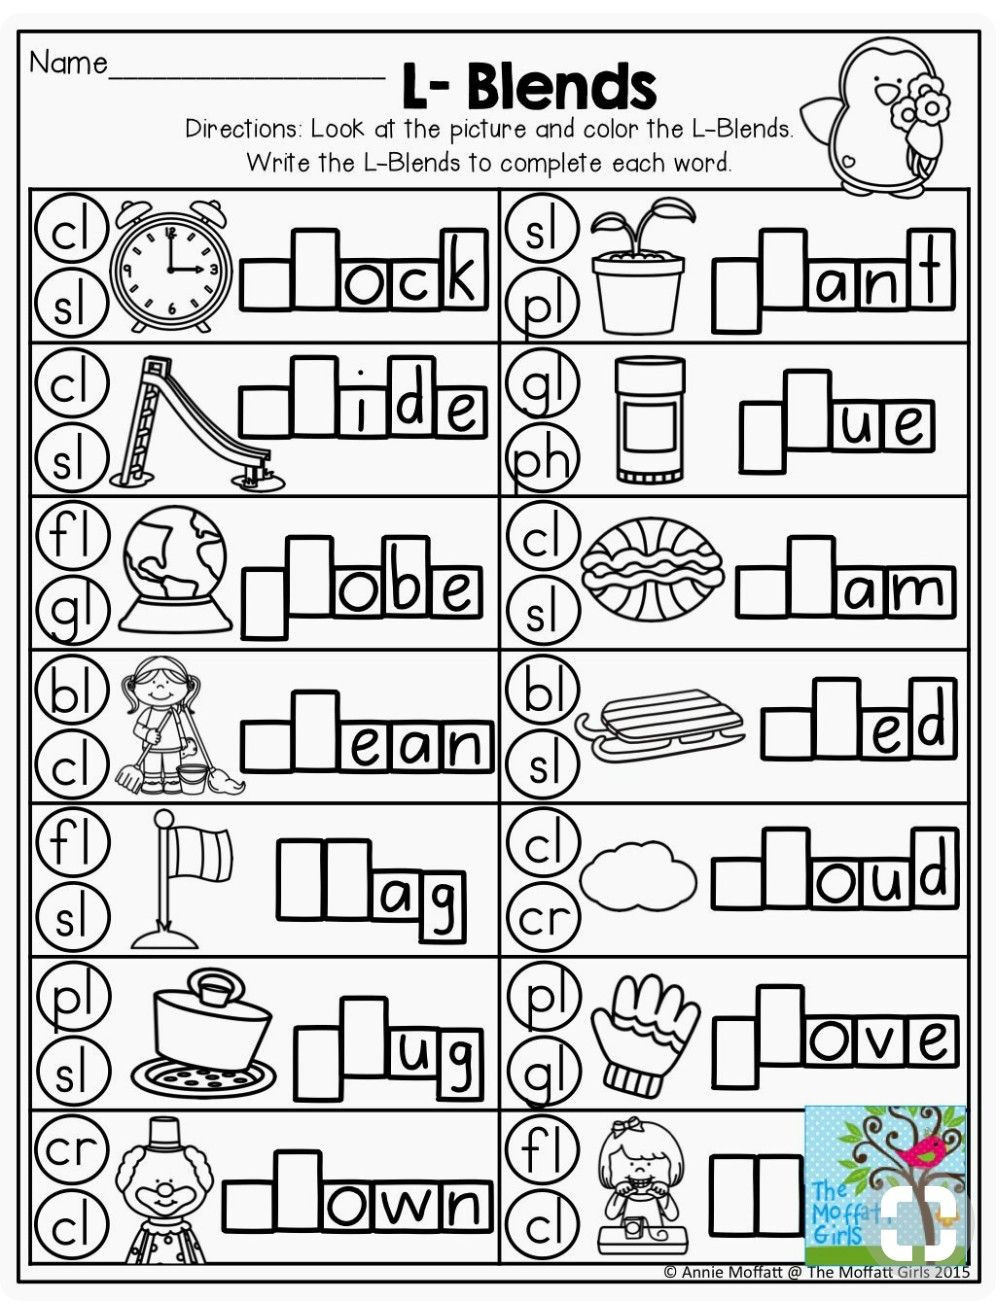 Blends Worksheets for 1st Grade Worksheet Awesome 1st Grade Phonicsrksheets Image Ideas